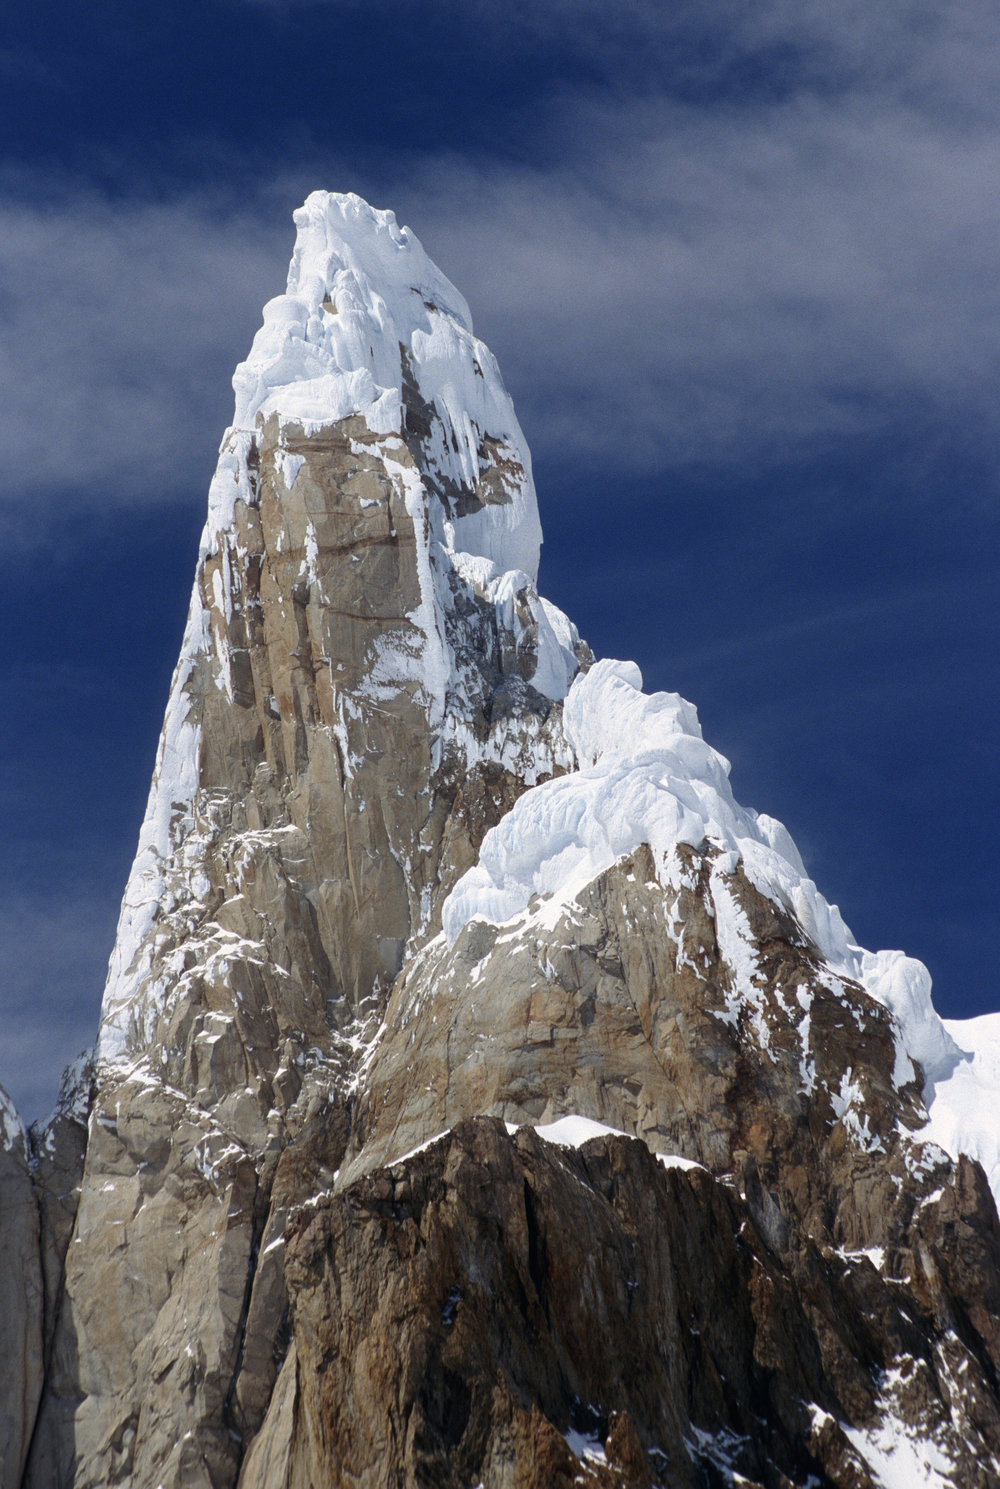 Base of the Cerro Torre